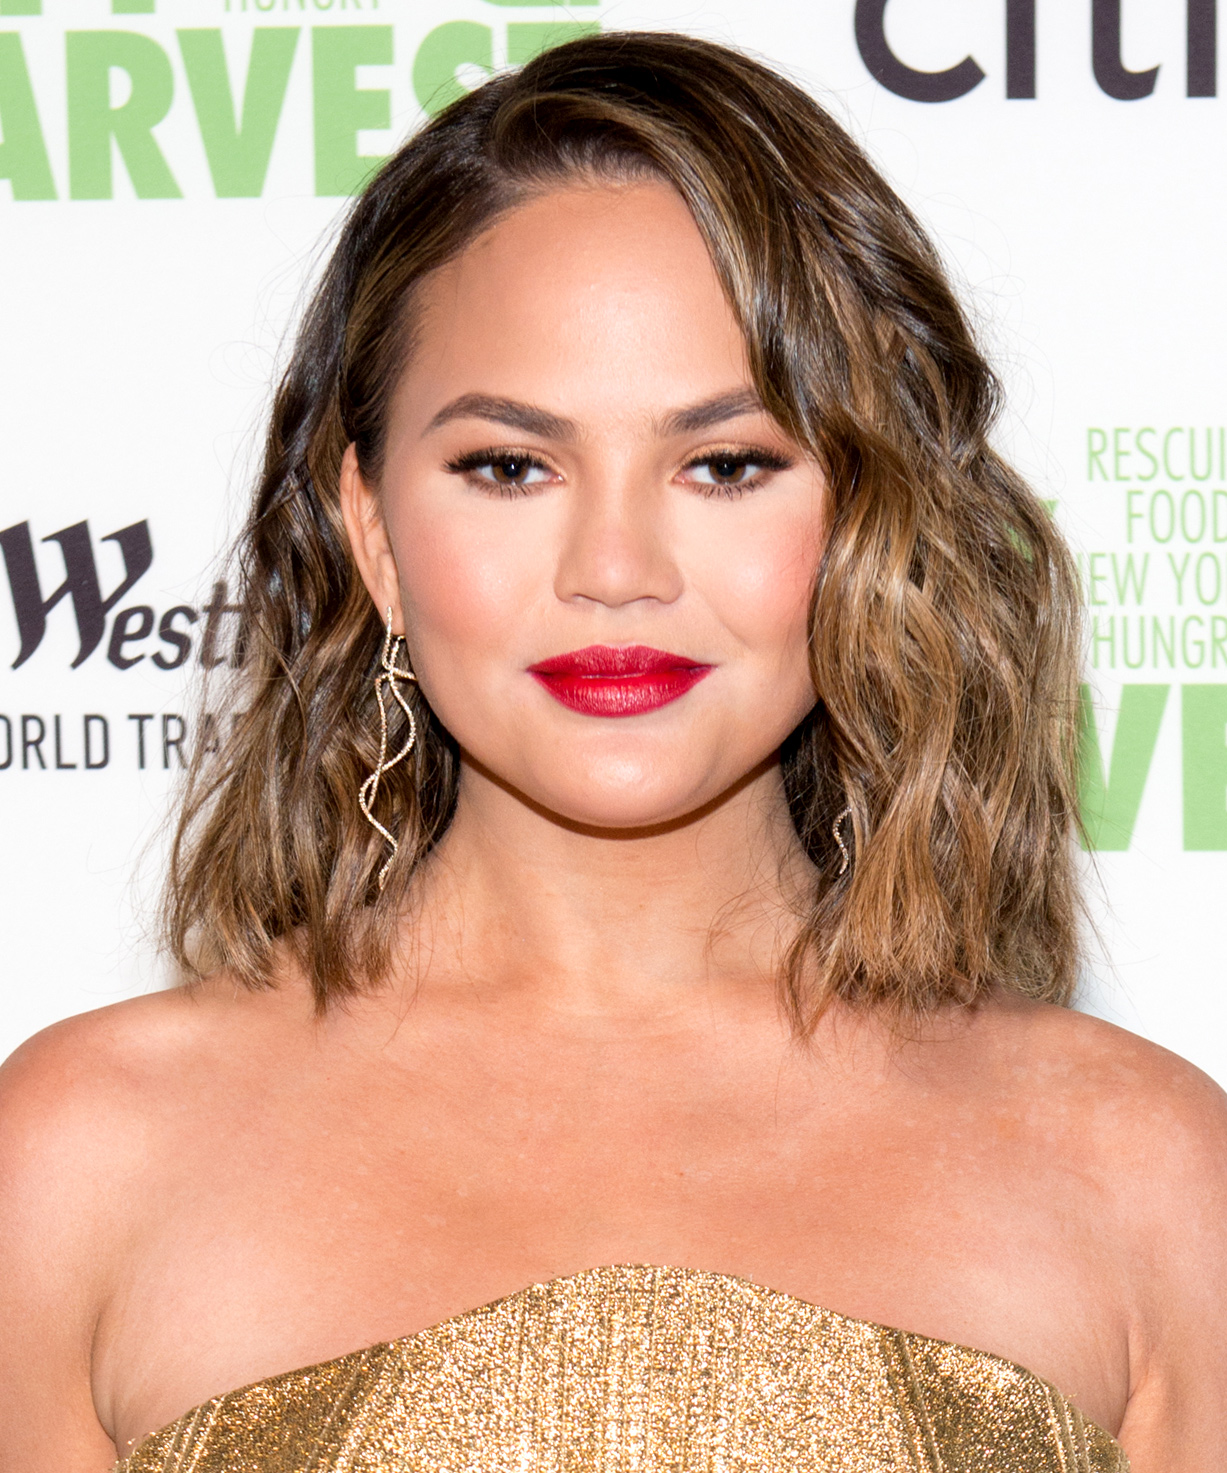 Chrissy Teigen's Beachy Waves